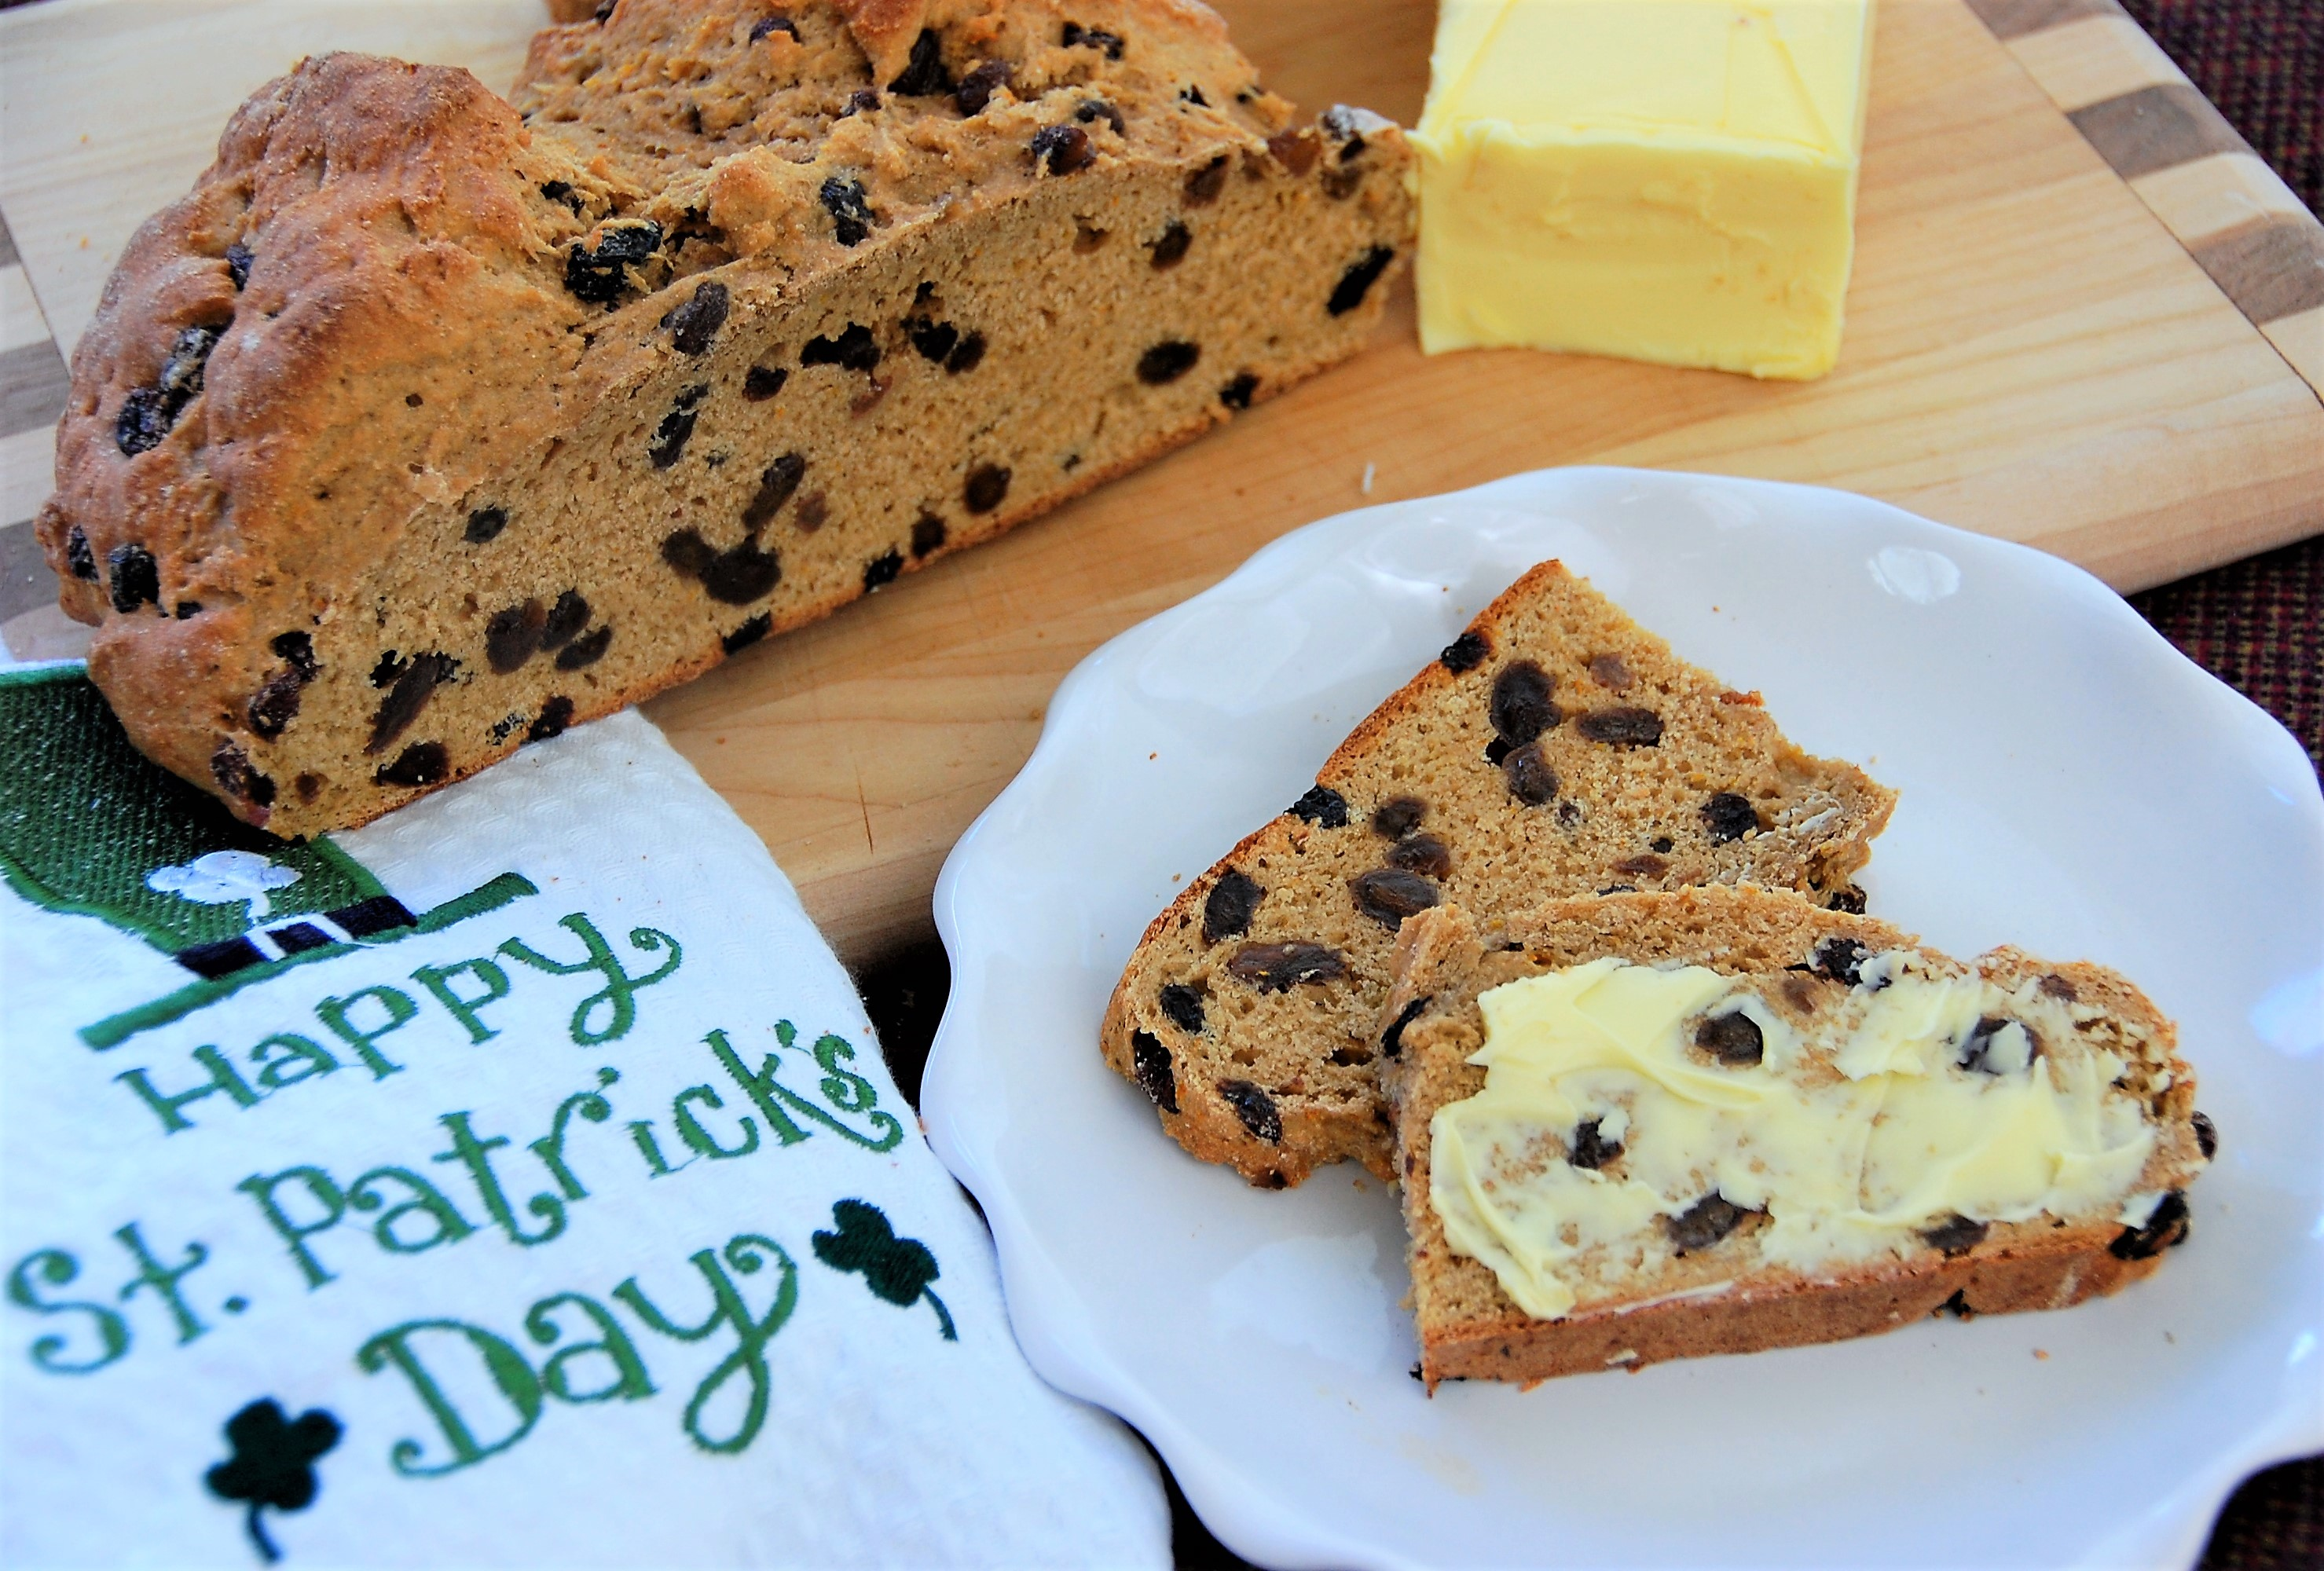 Irish Raisin Soda Bread with Orange Zest